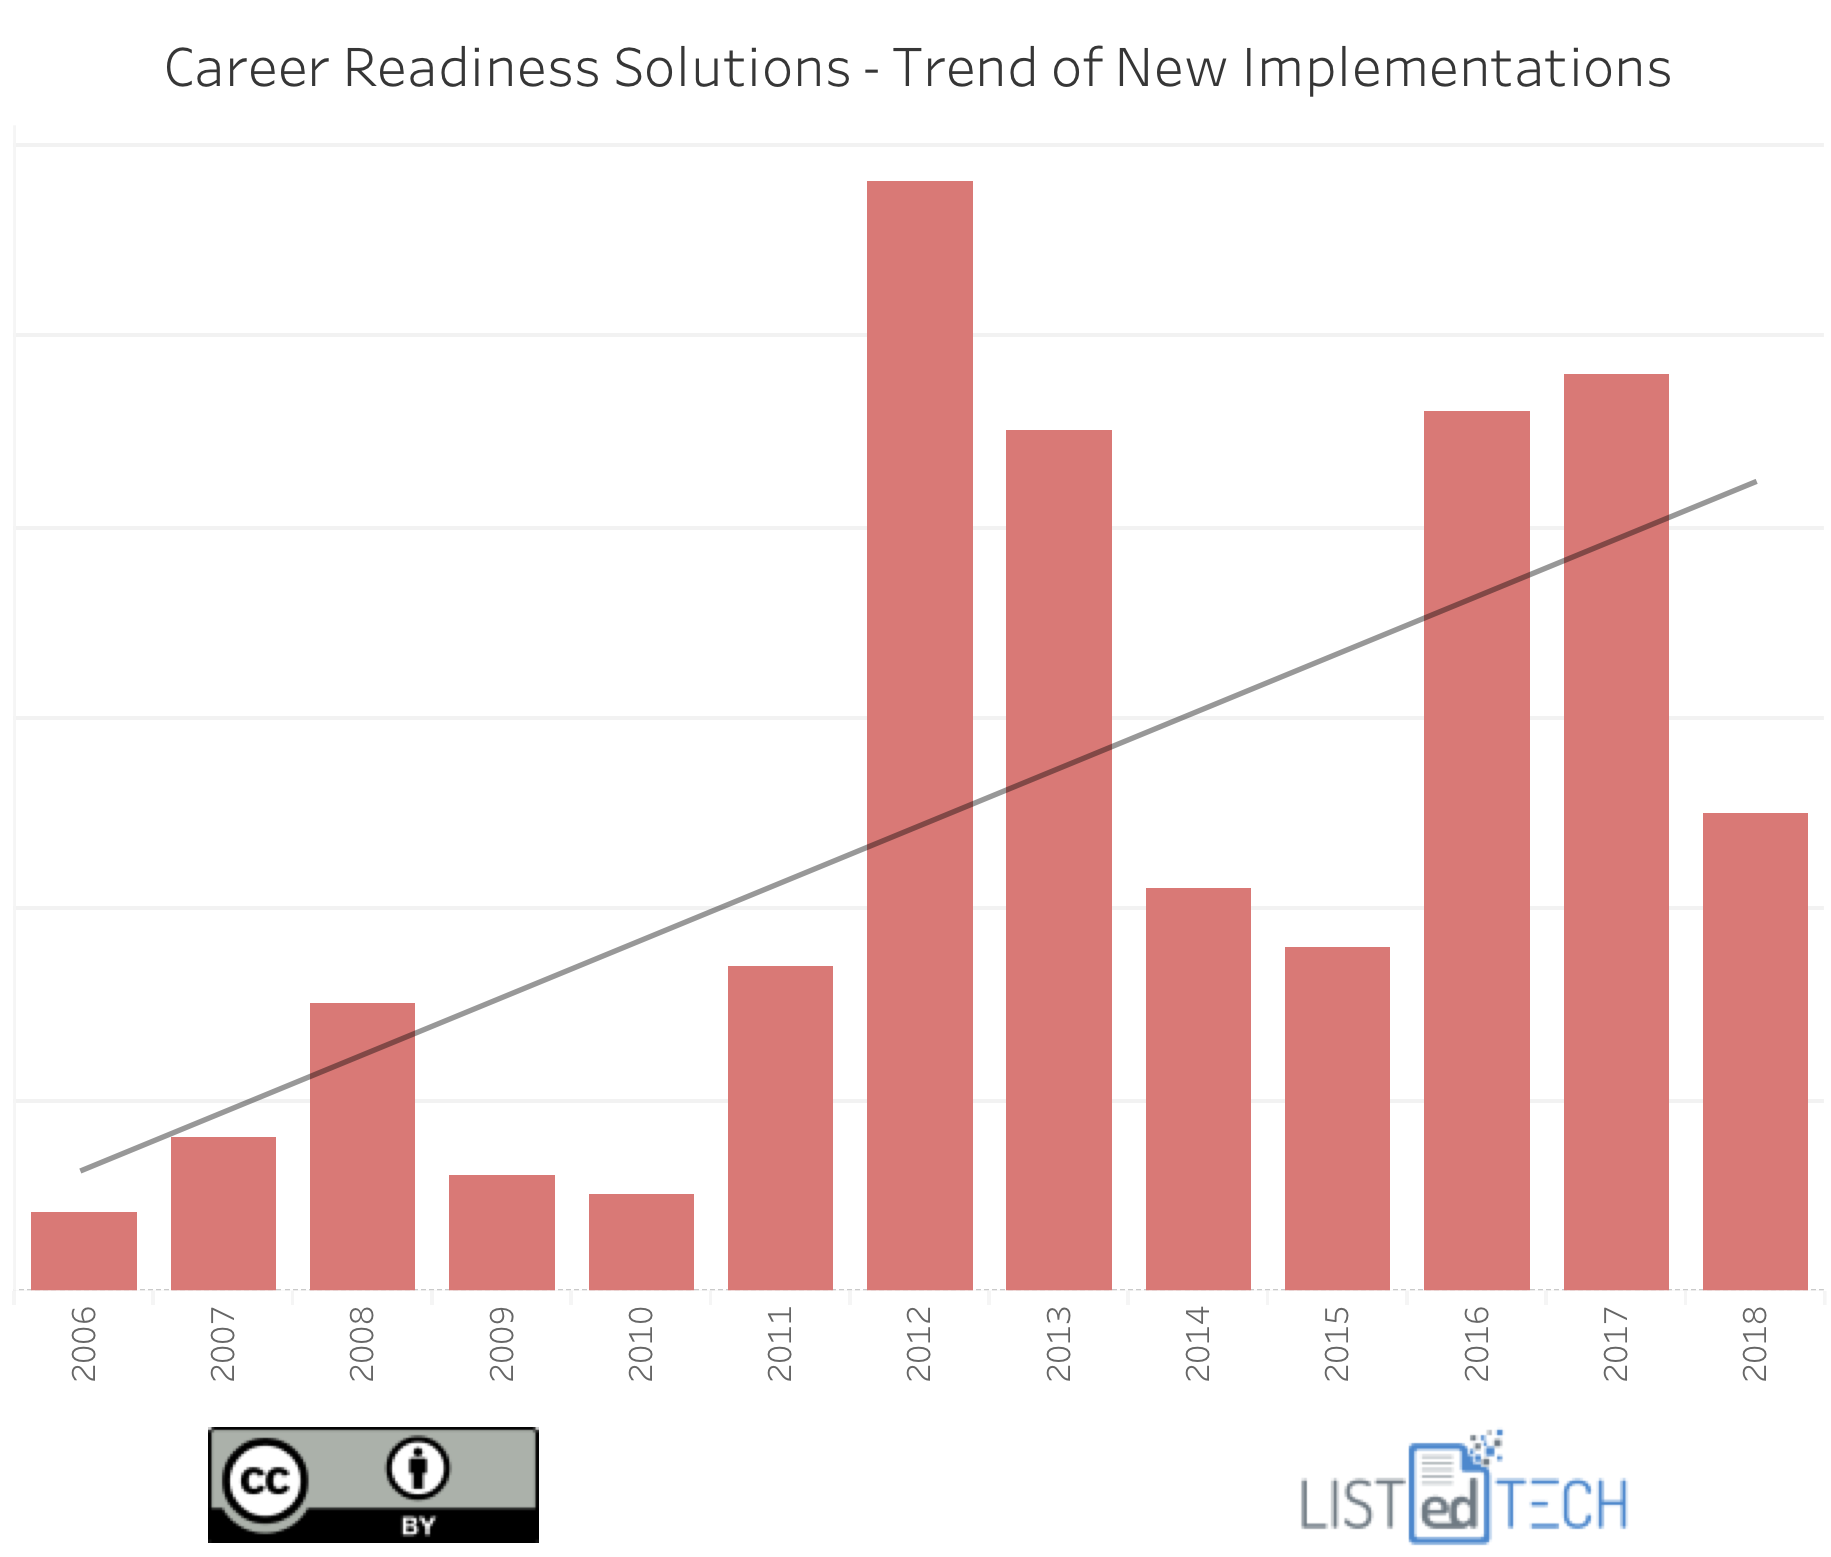 Career Readiness Solutions - LisTedTECH